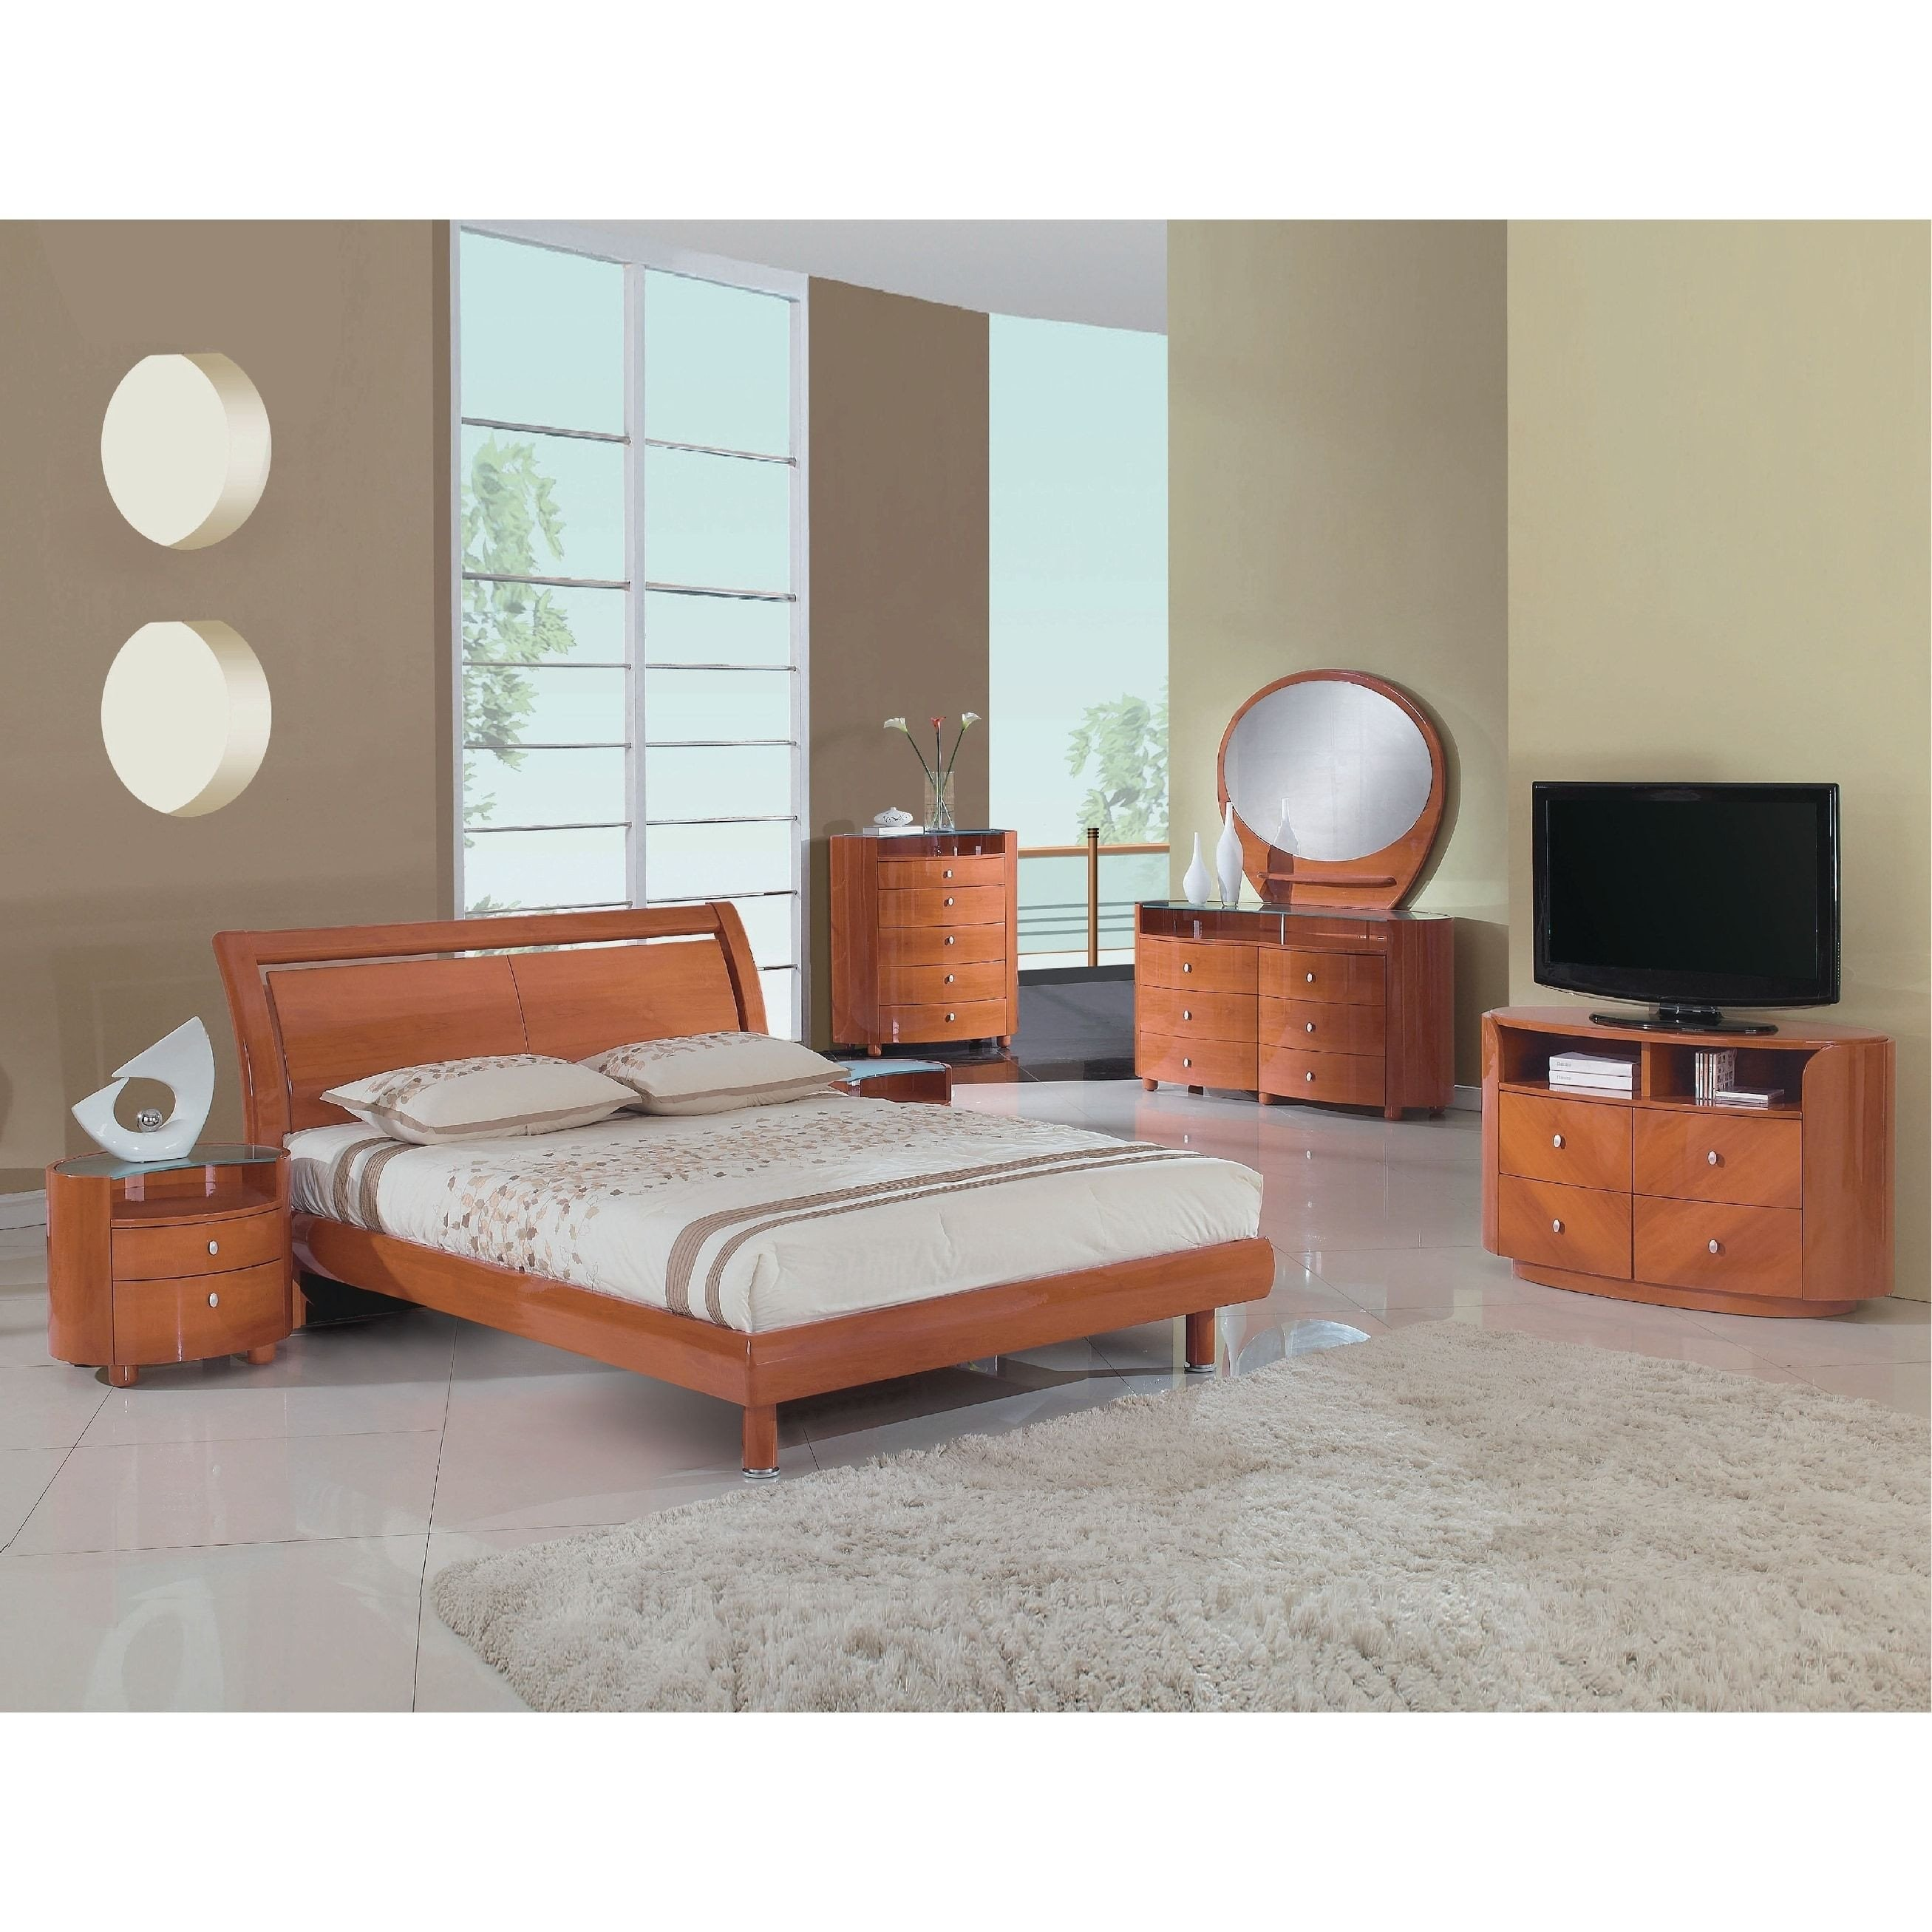 King Size Bedroom Set New Line Shopping Bedding Furniture Electronics Jewelry